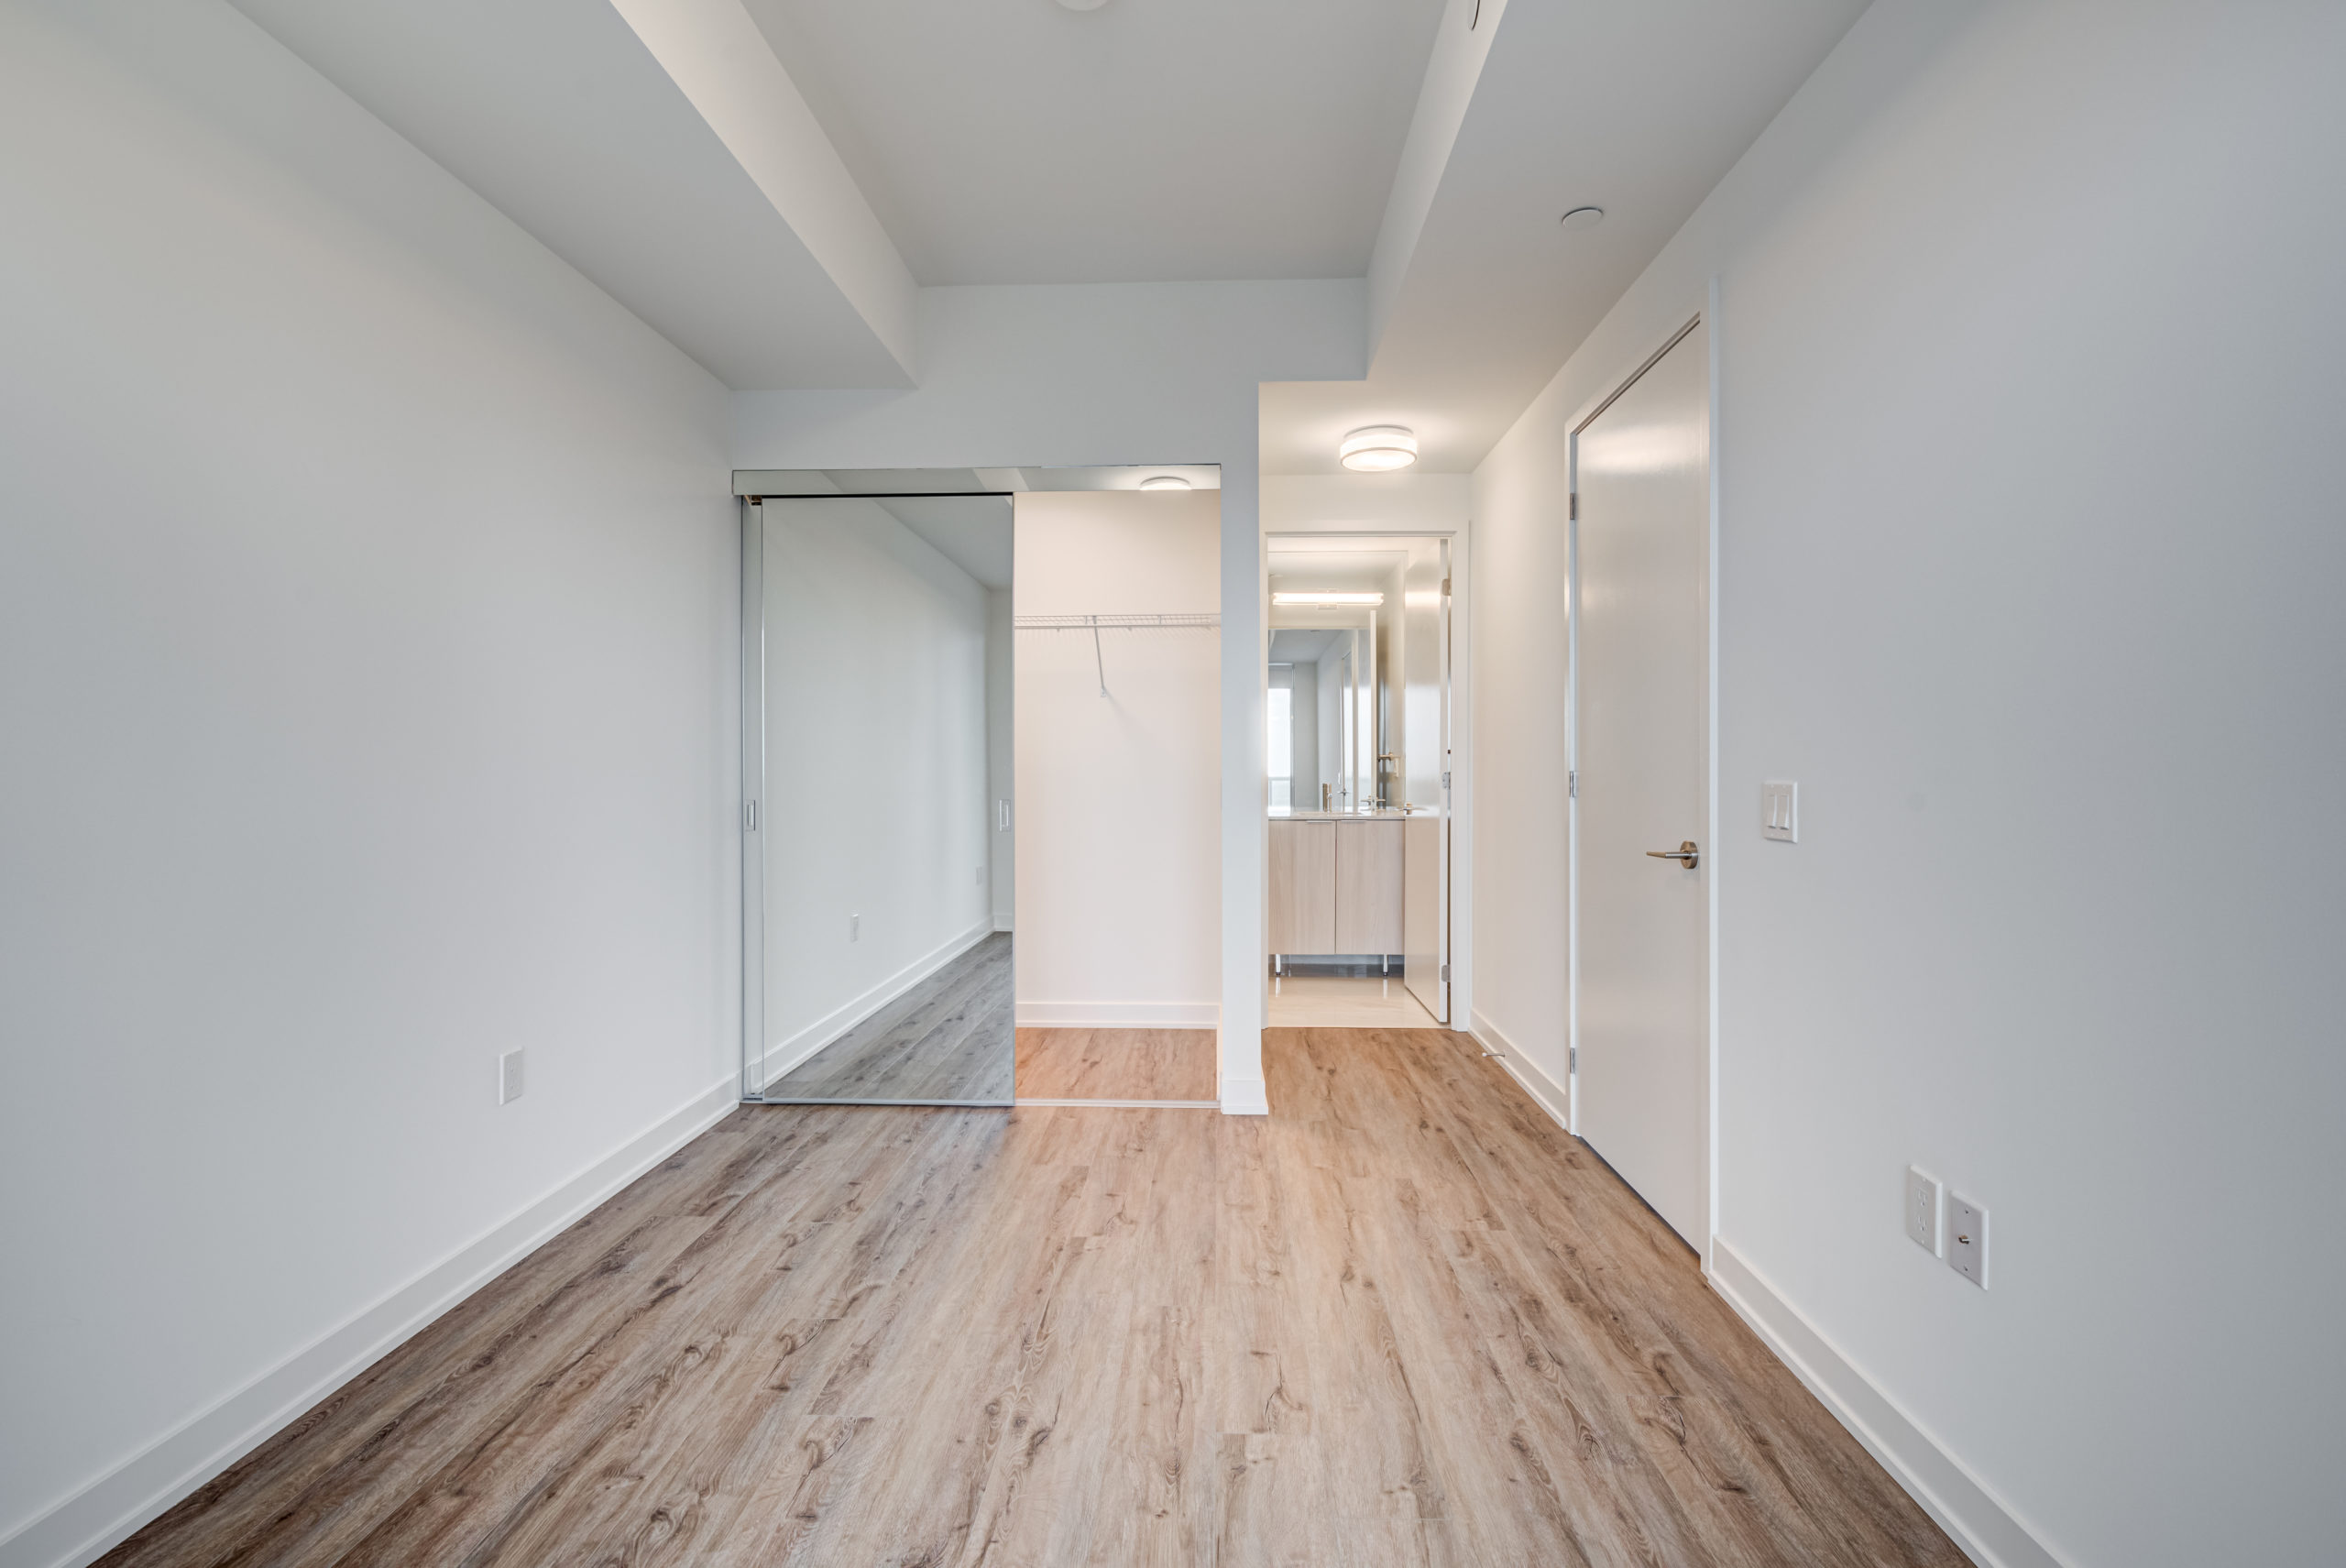 15 Queens Quay E Unit 1901 master bedroom with split layout.